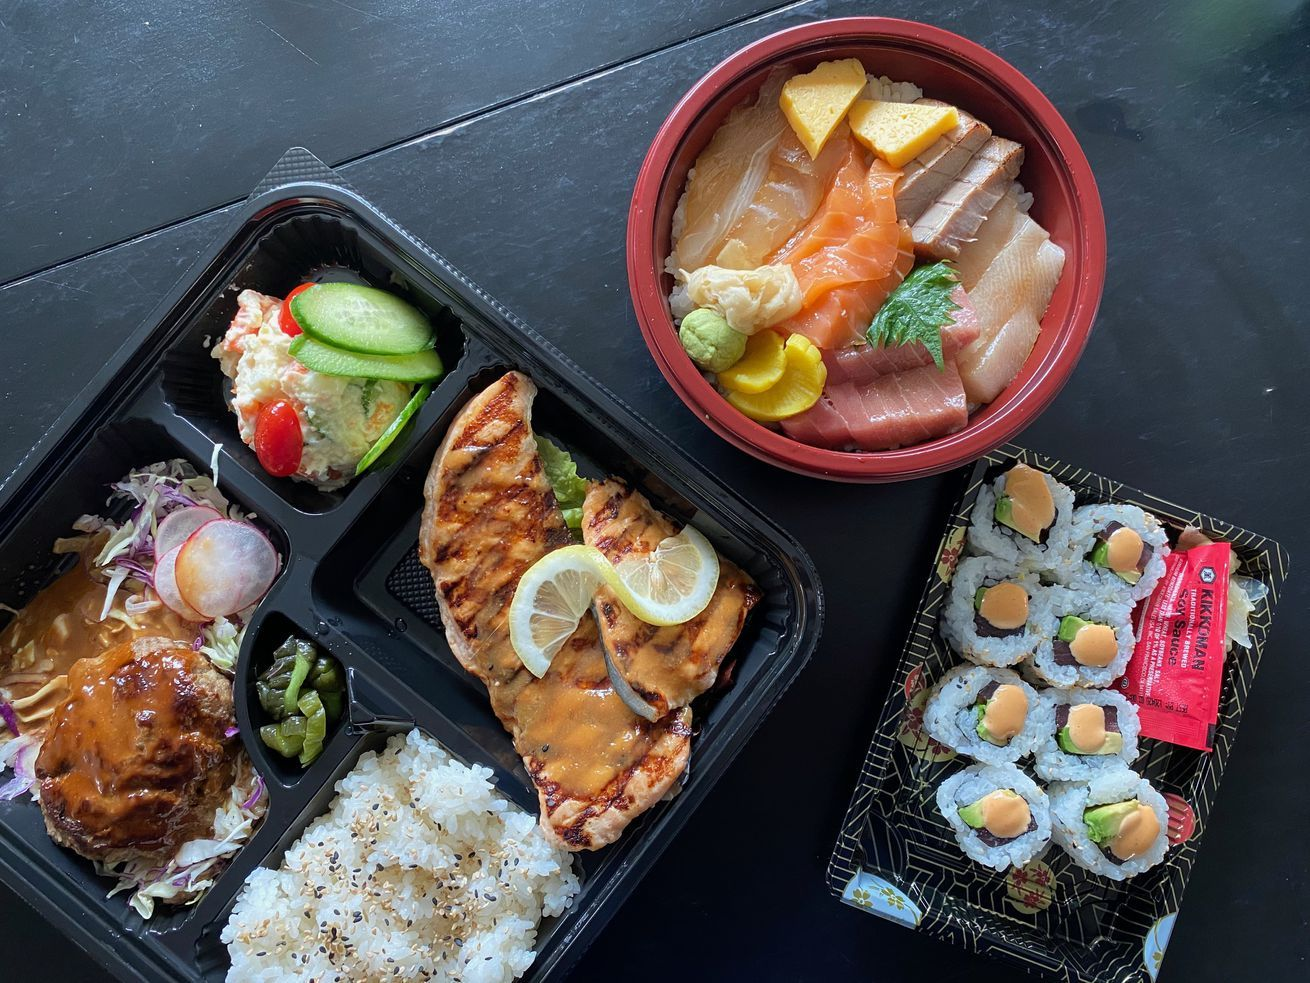 The Best Dishes Eater Editors Ate This Week Eater Food Sushi Restaurants